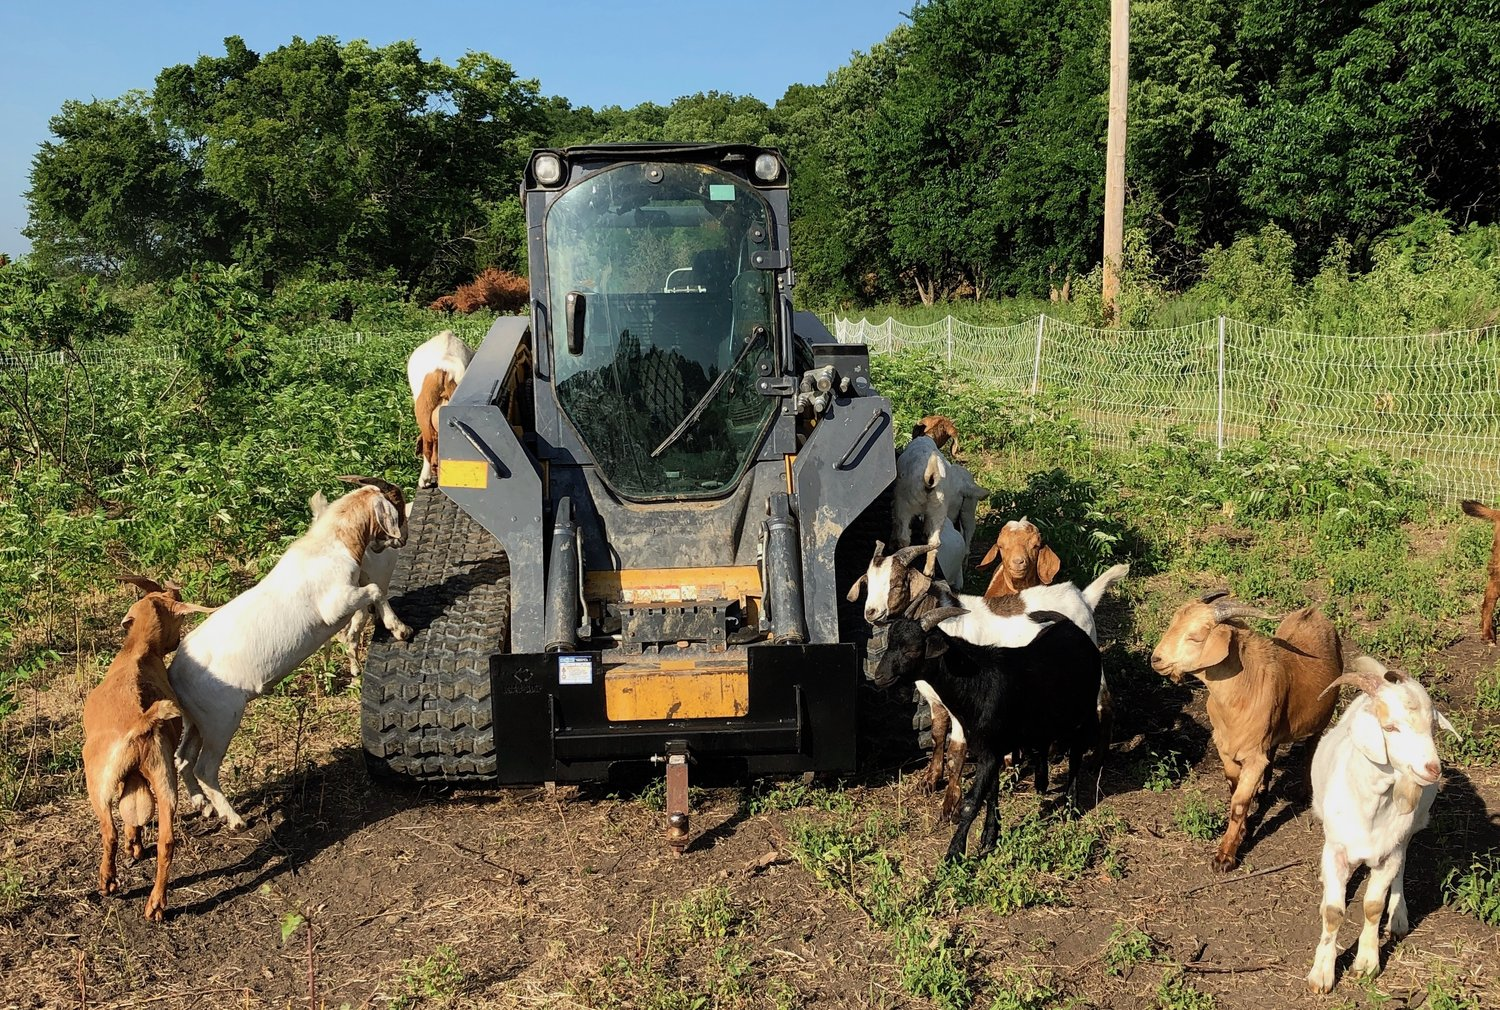 A Tractor vs Skid Steer For Your Farm or Homestead